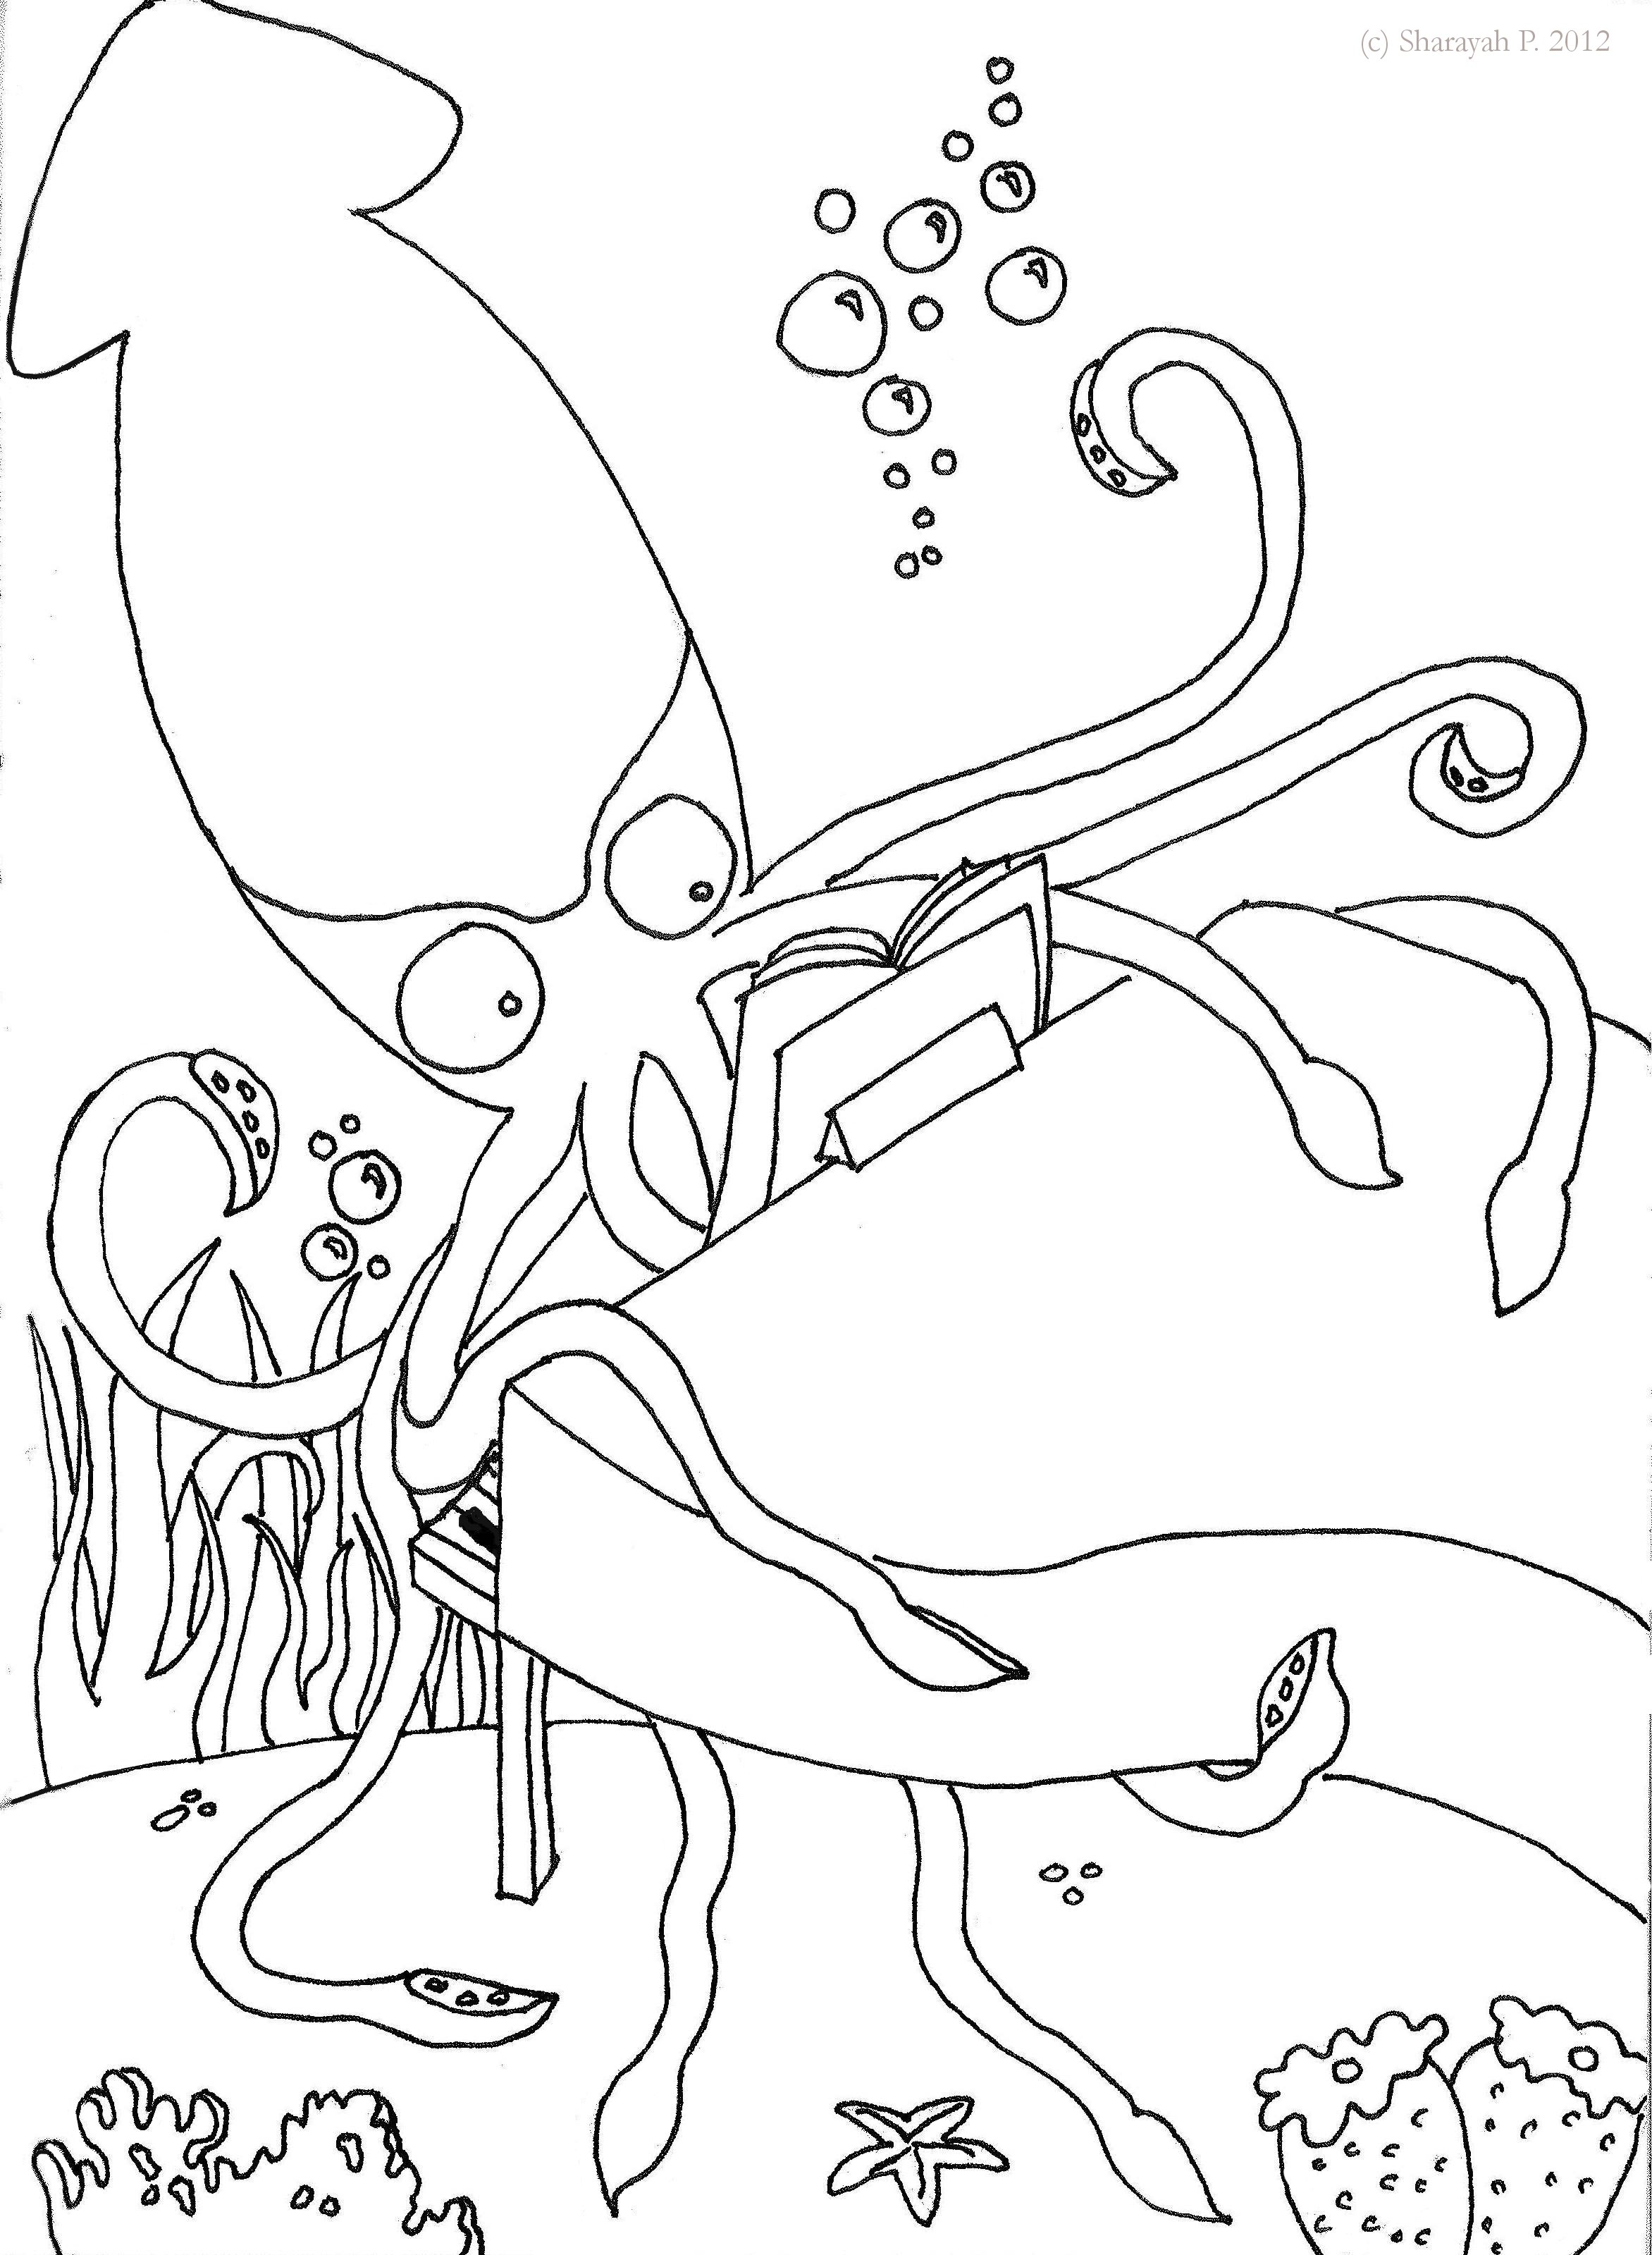 Giant squid coloring coloring pages for Giant squid coloring pages